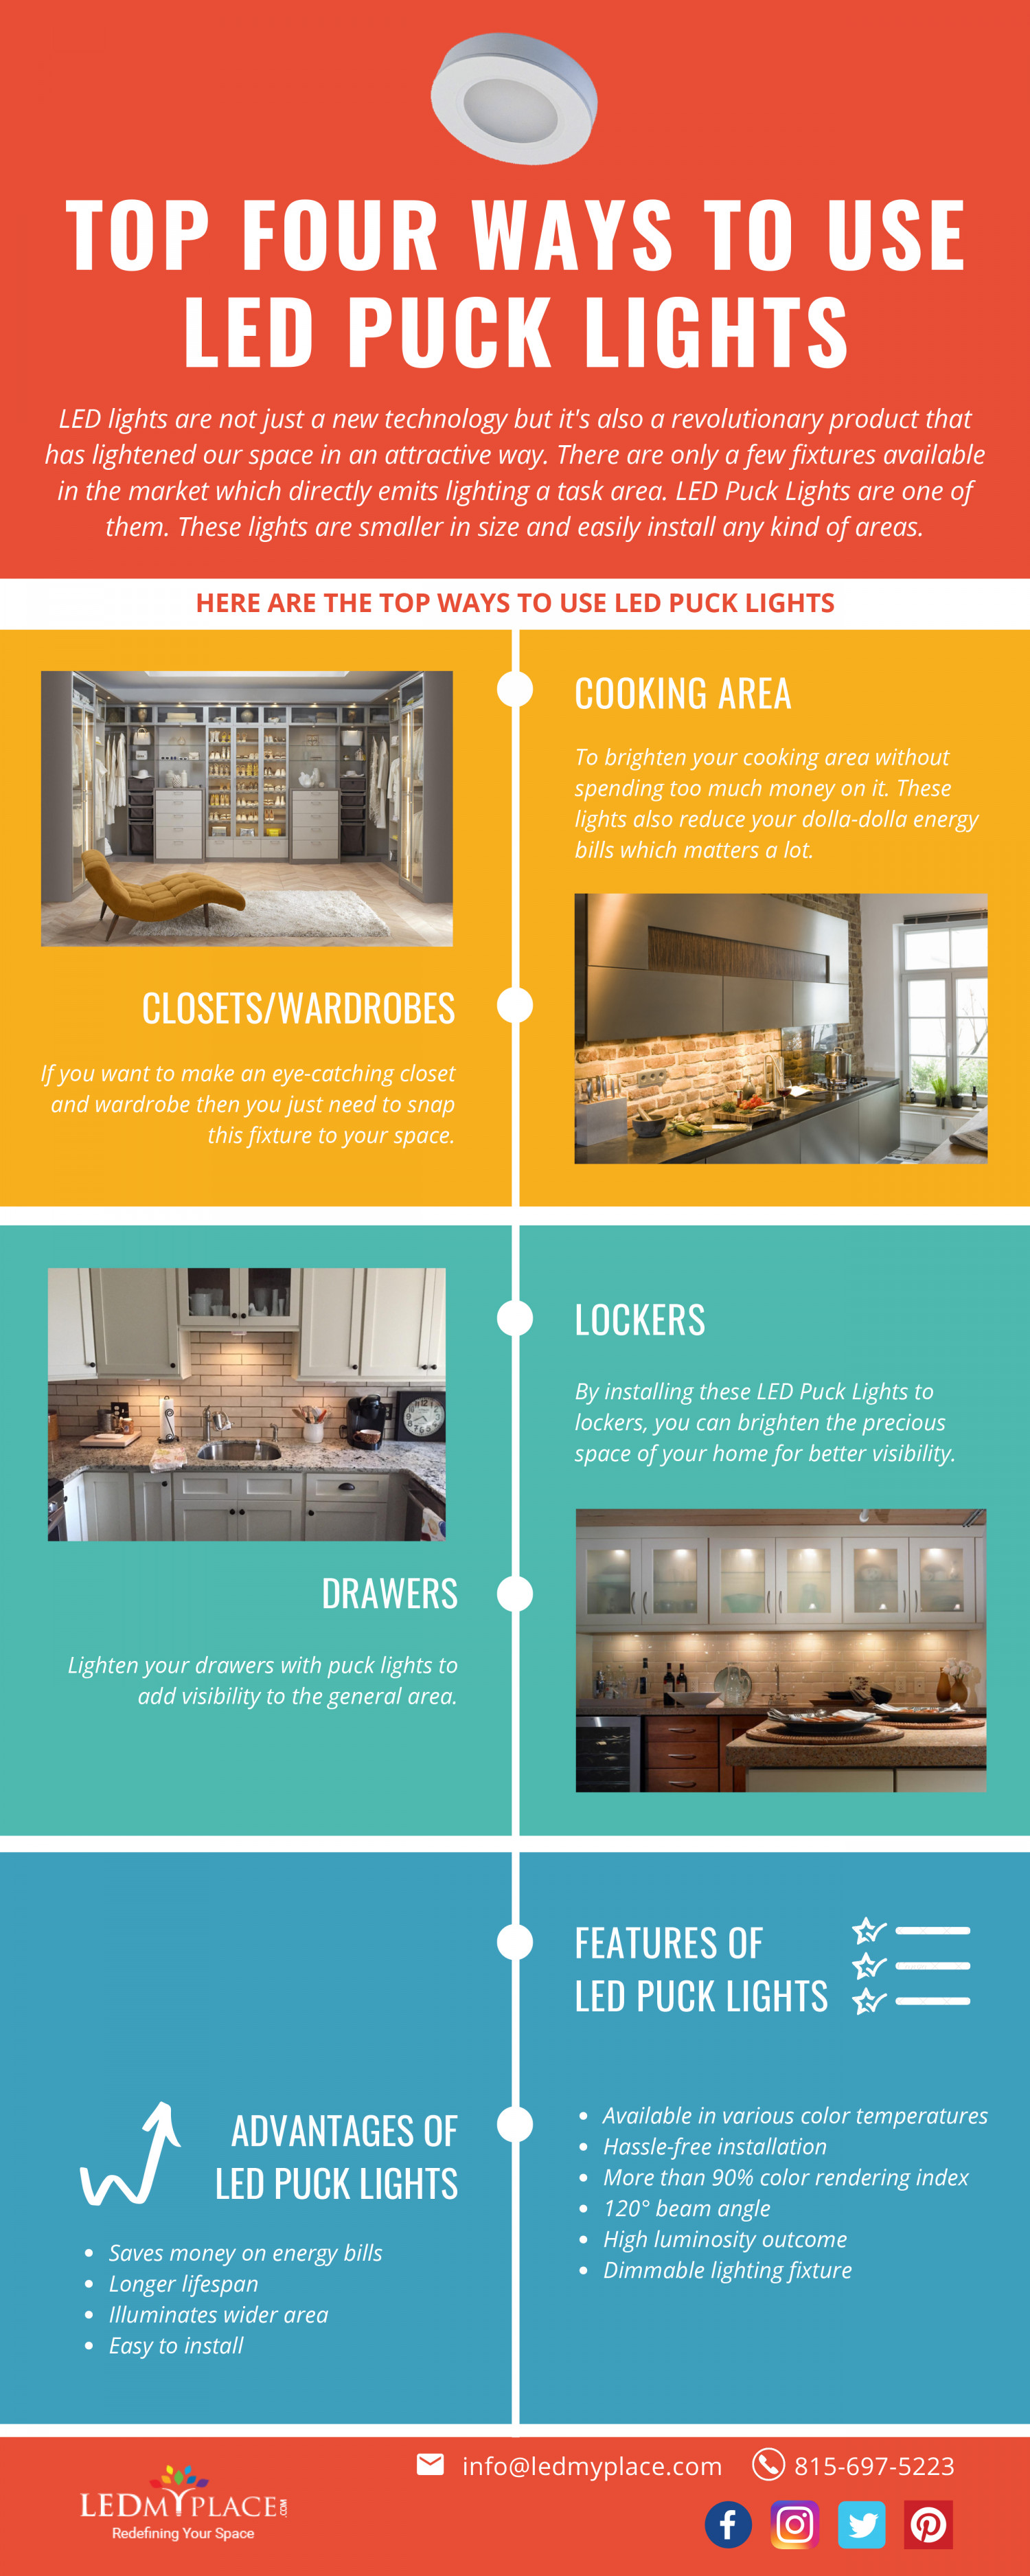 Looking For Kitchen Lighting - Consider LED Puck Light  Infographic